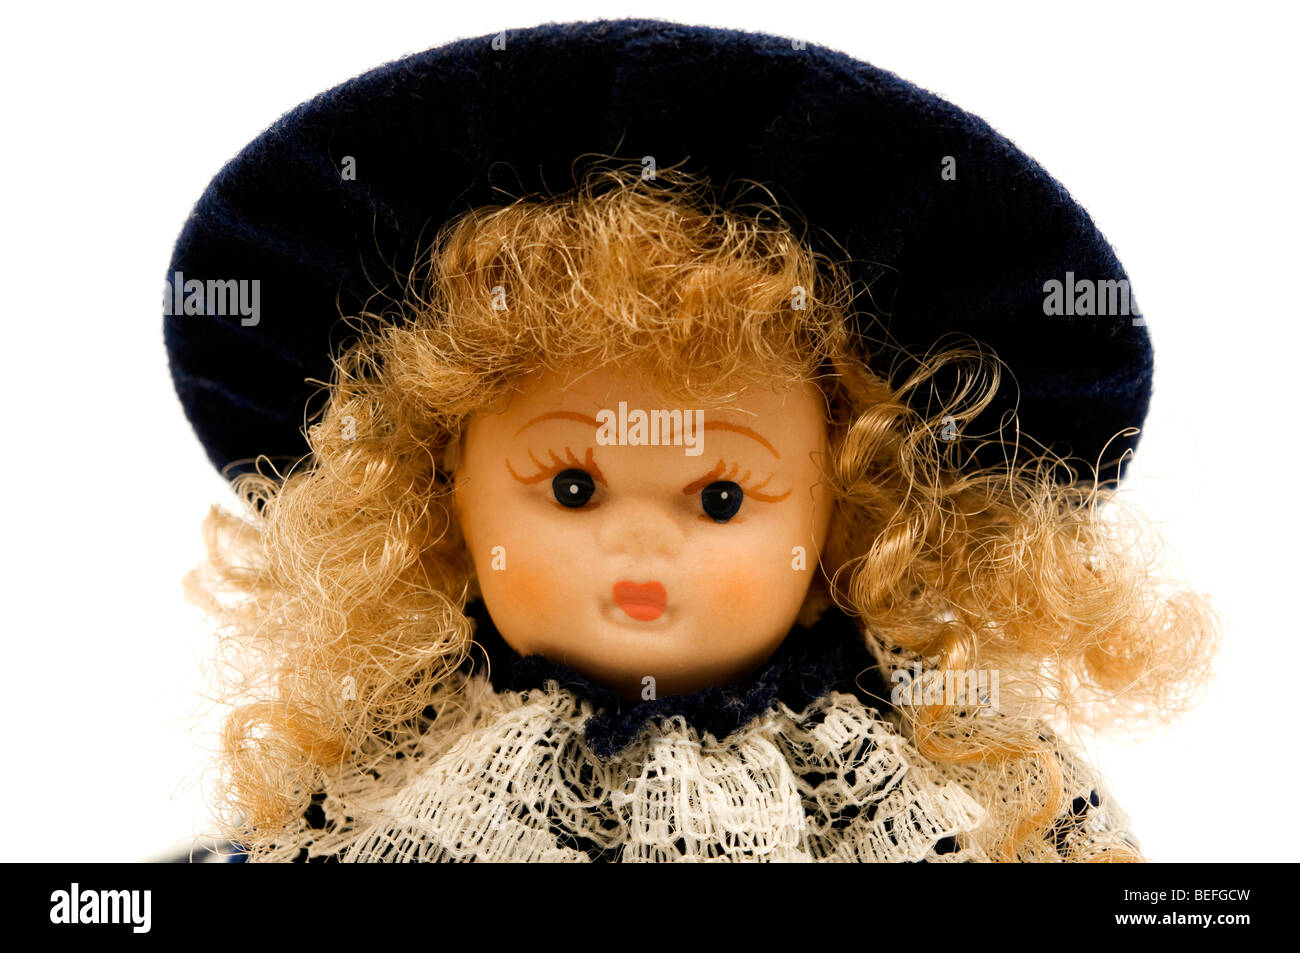 Portrait of an old porcelain doll - Stock Image